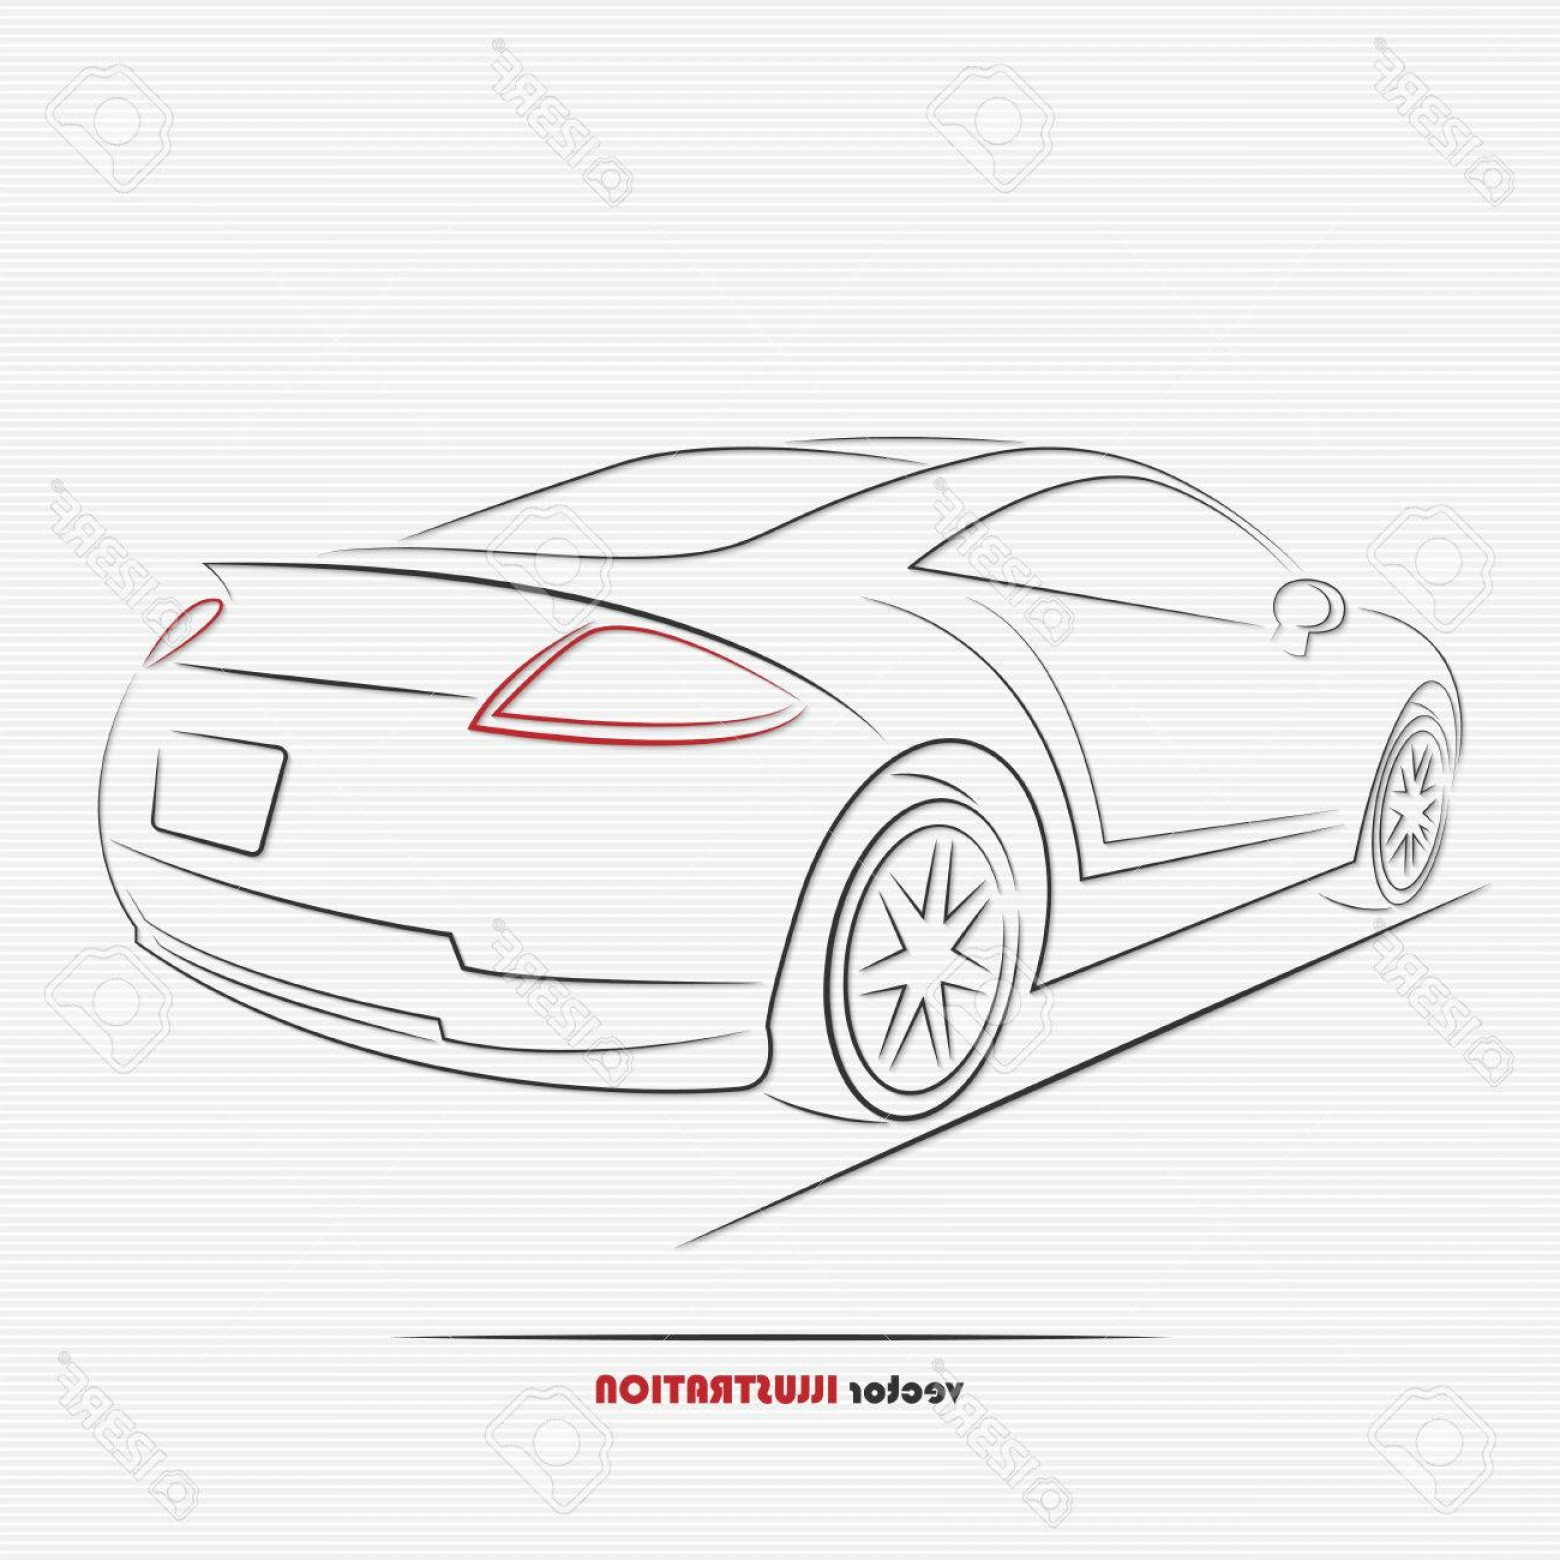 Mitsubishi Eclipse Vector: Photostock Vector Silhouette Of Sport Car For Your Design